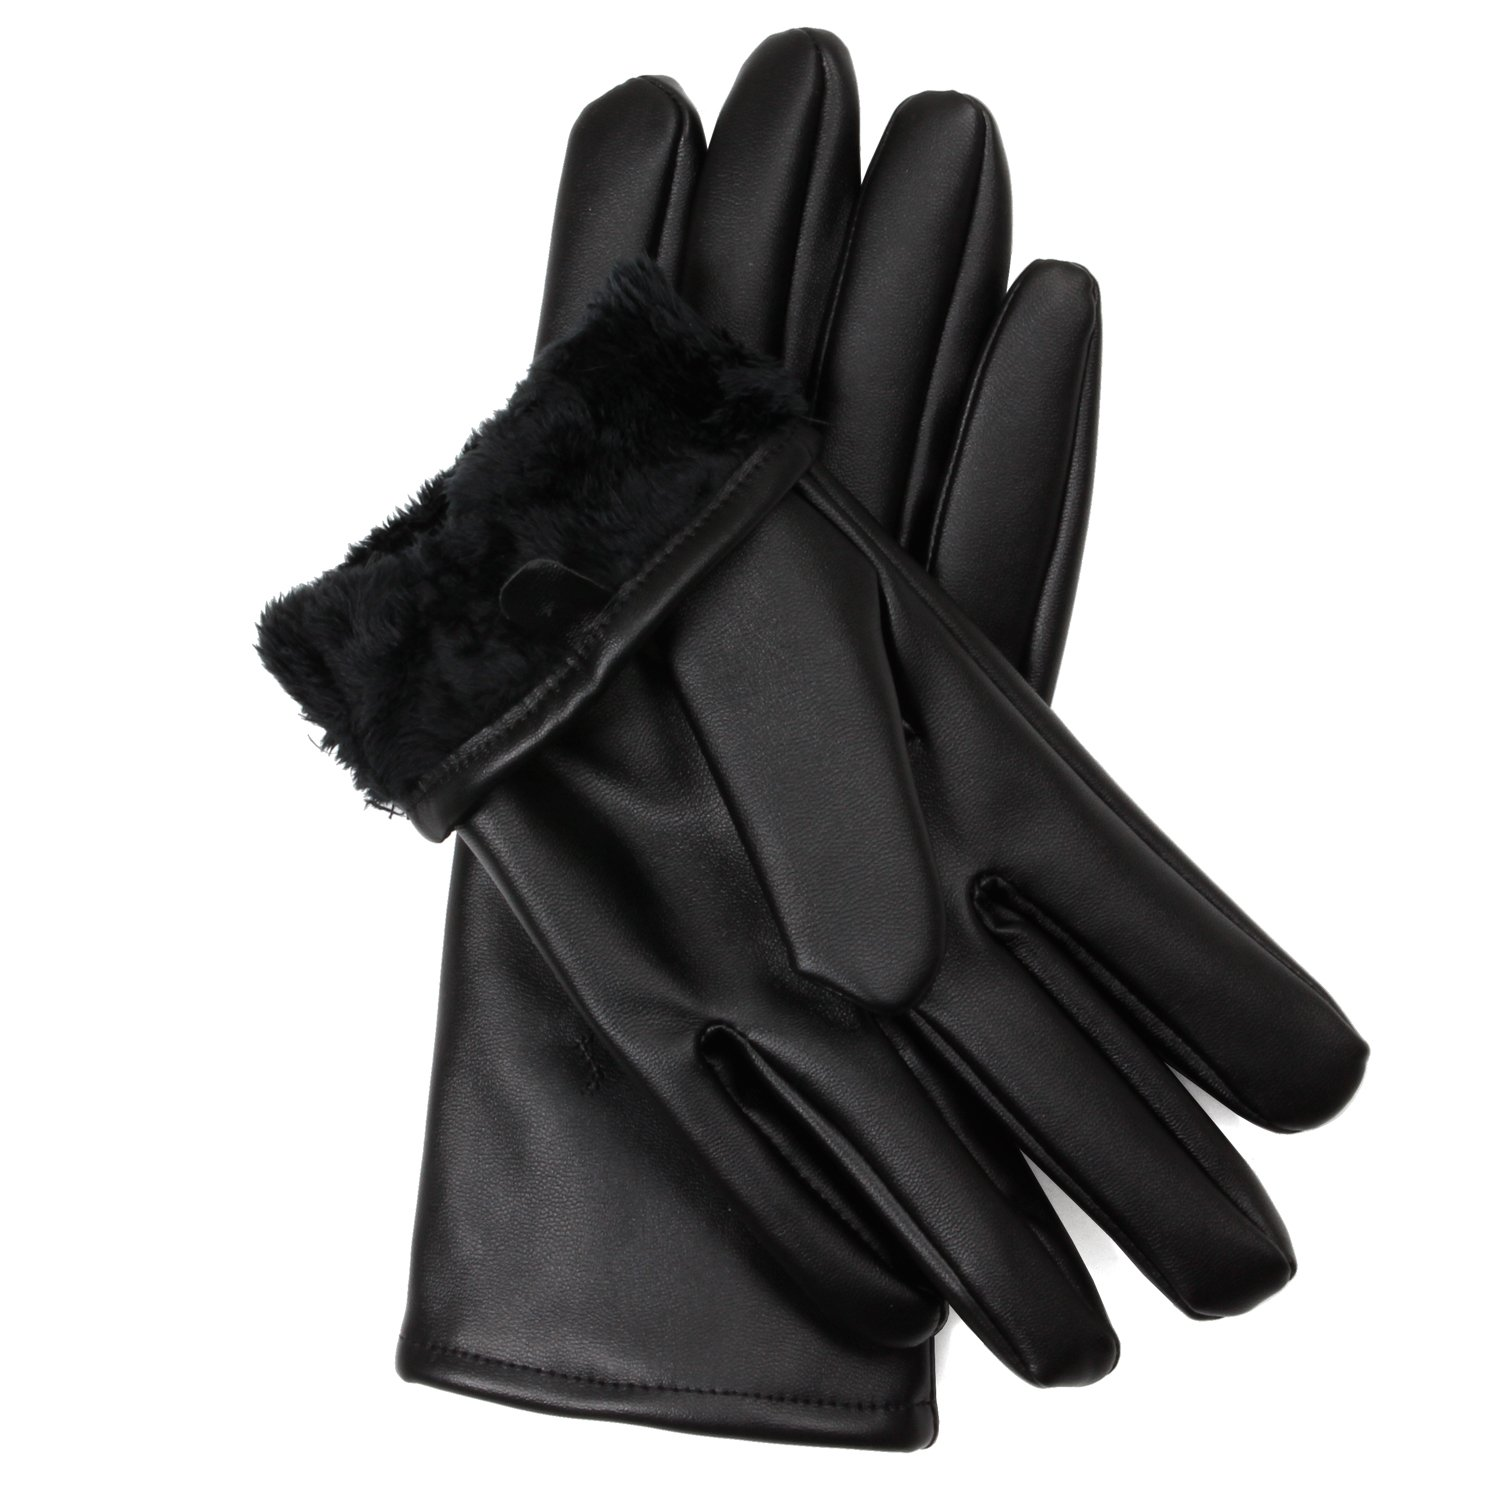 Fake leather driving gloves - Amazon Com Men S Fur Lined Faux Leather Gloves With Touchscreen Technology X Small Black Clothing